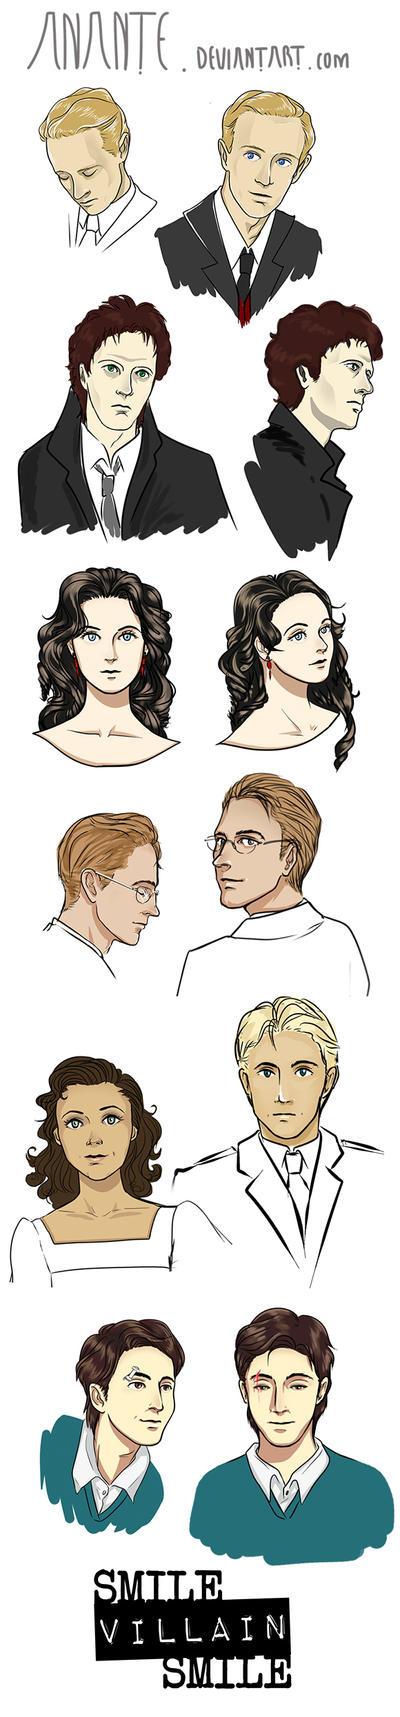 Character Busts by Anante